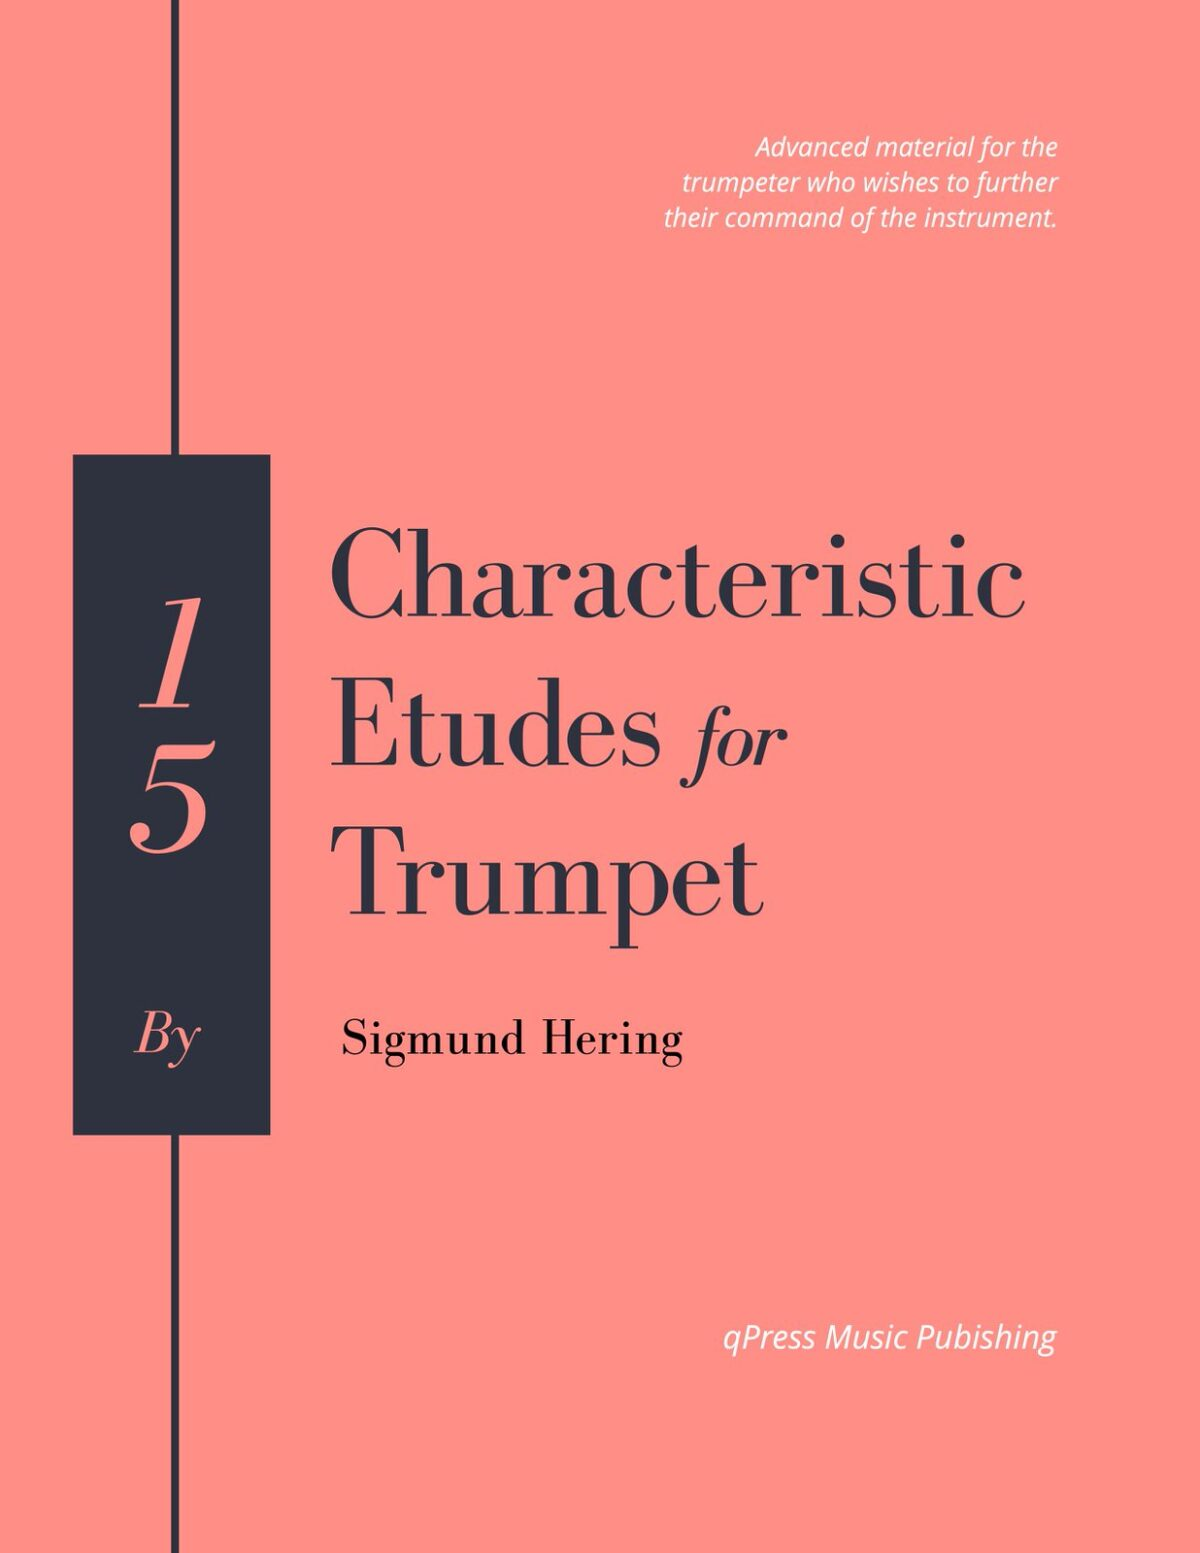 Hering, 15 Characteristic Etudes for Trumpet-p01